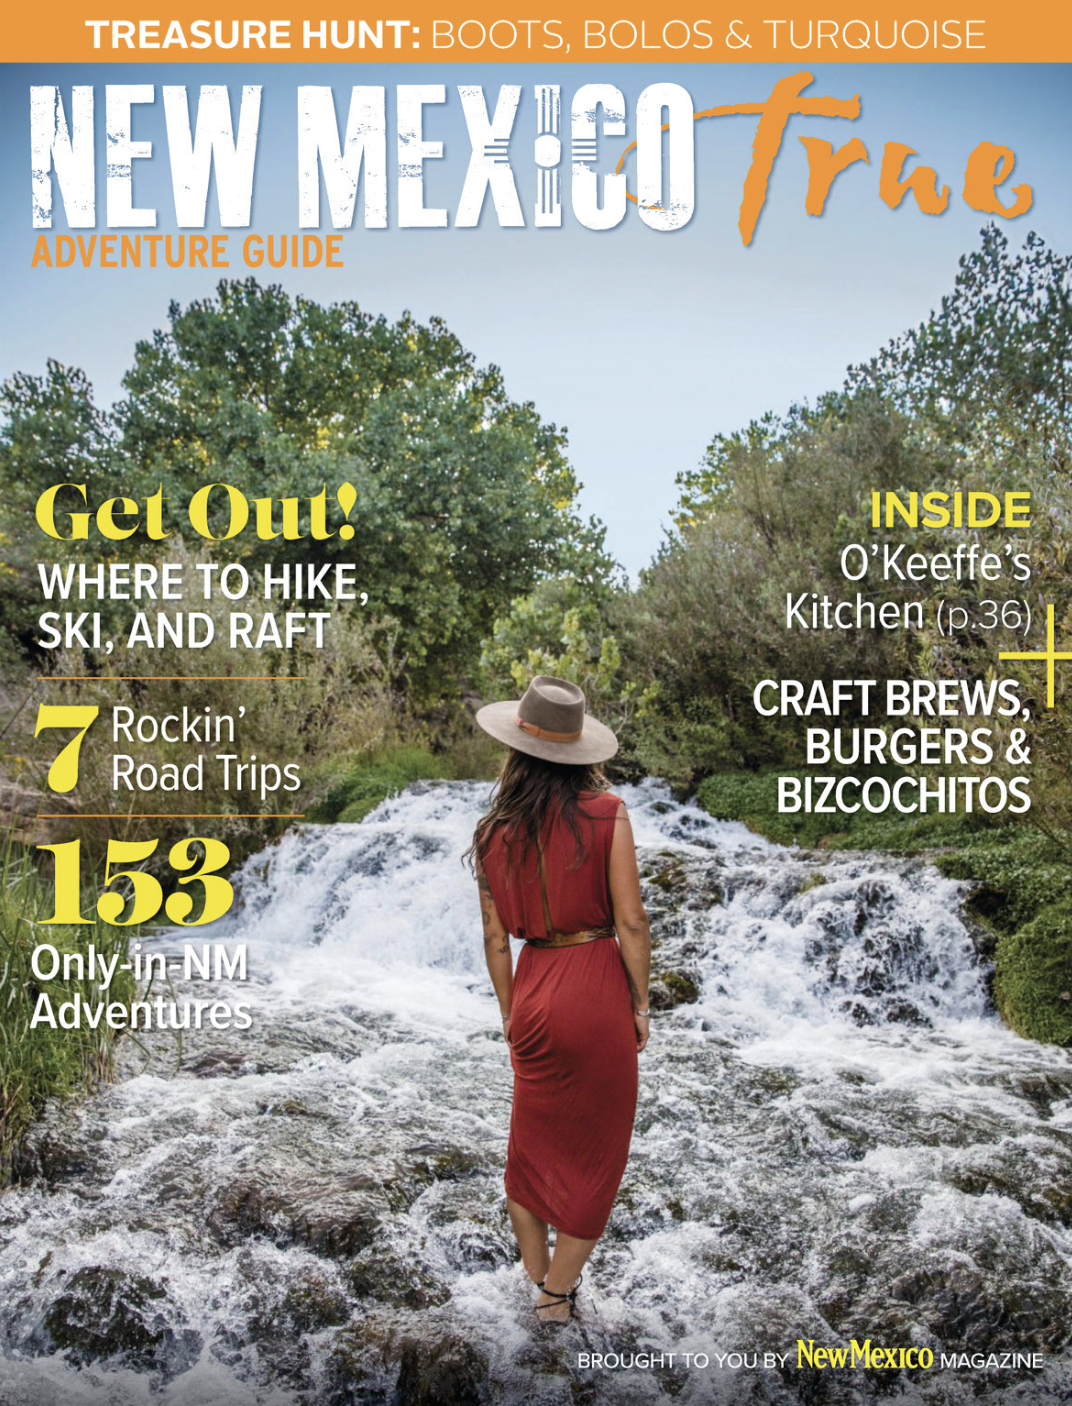 2018 New Mexico True Adventure Guide